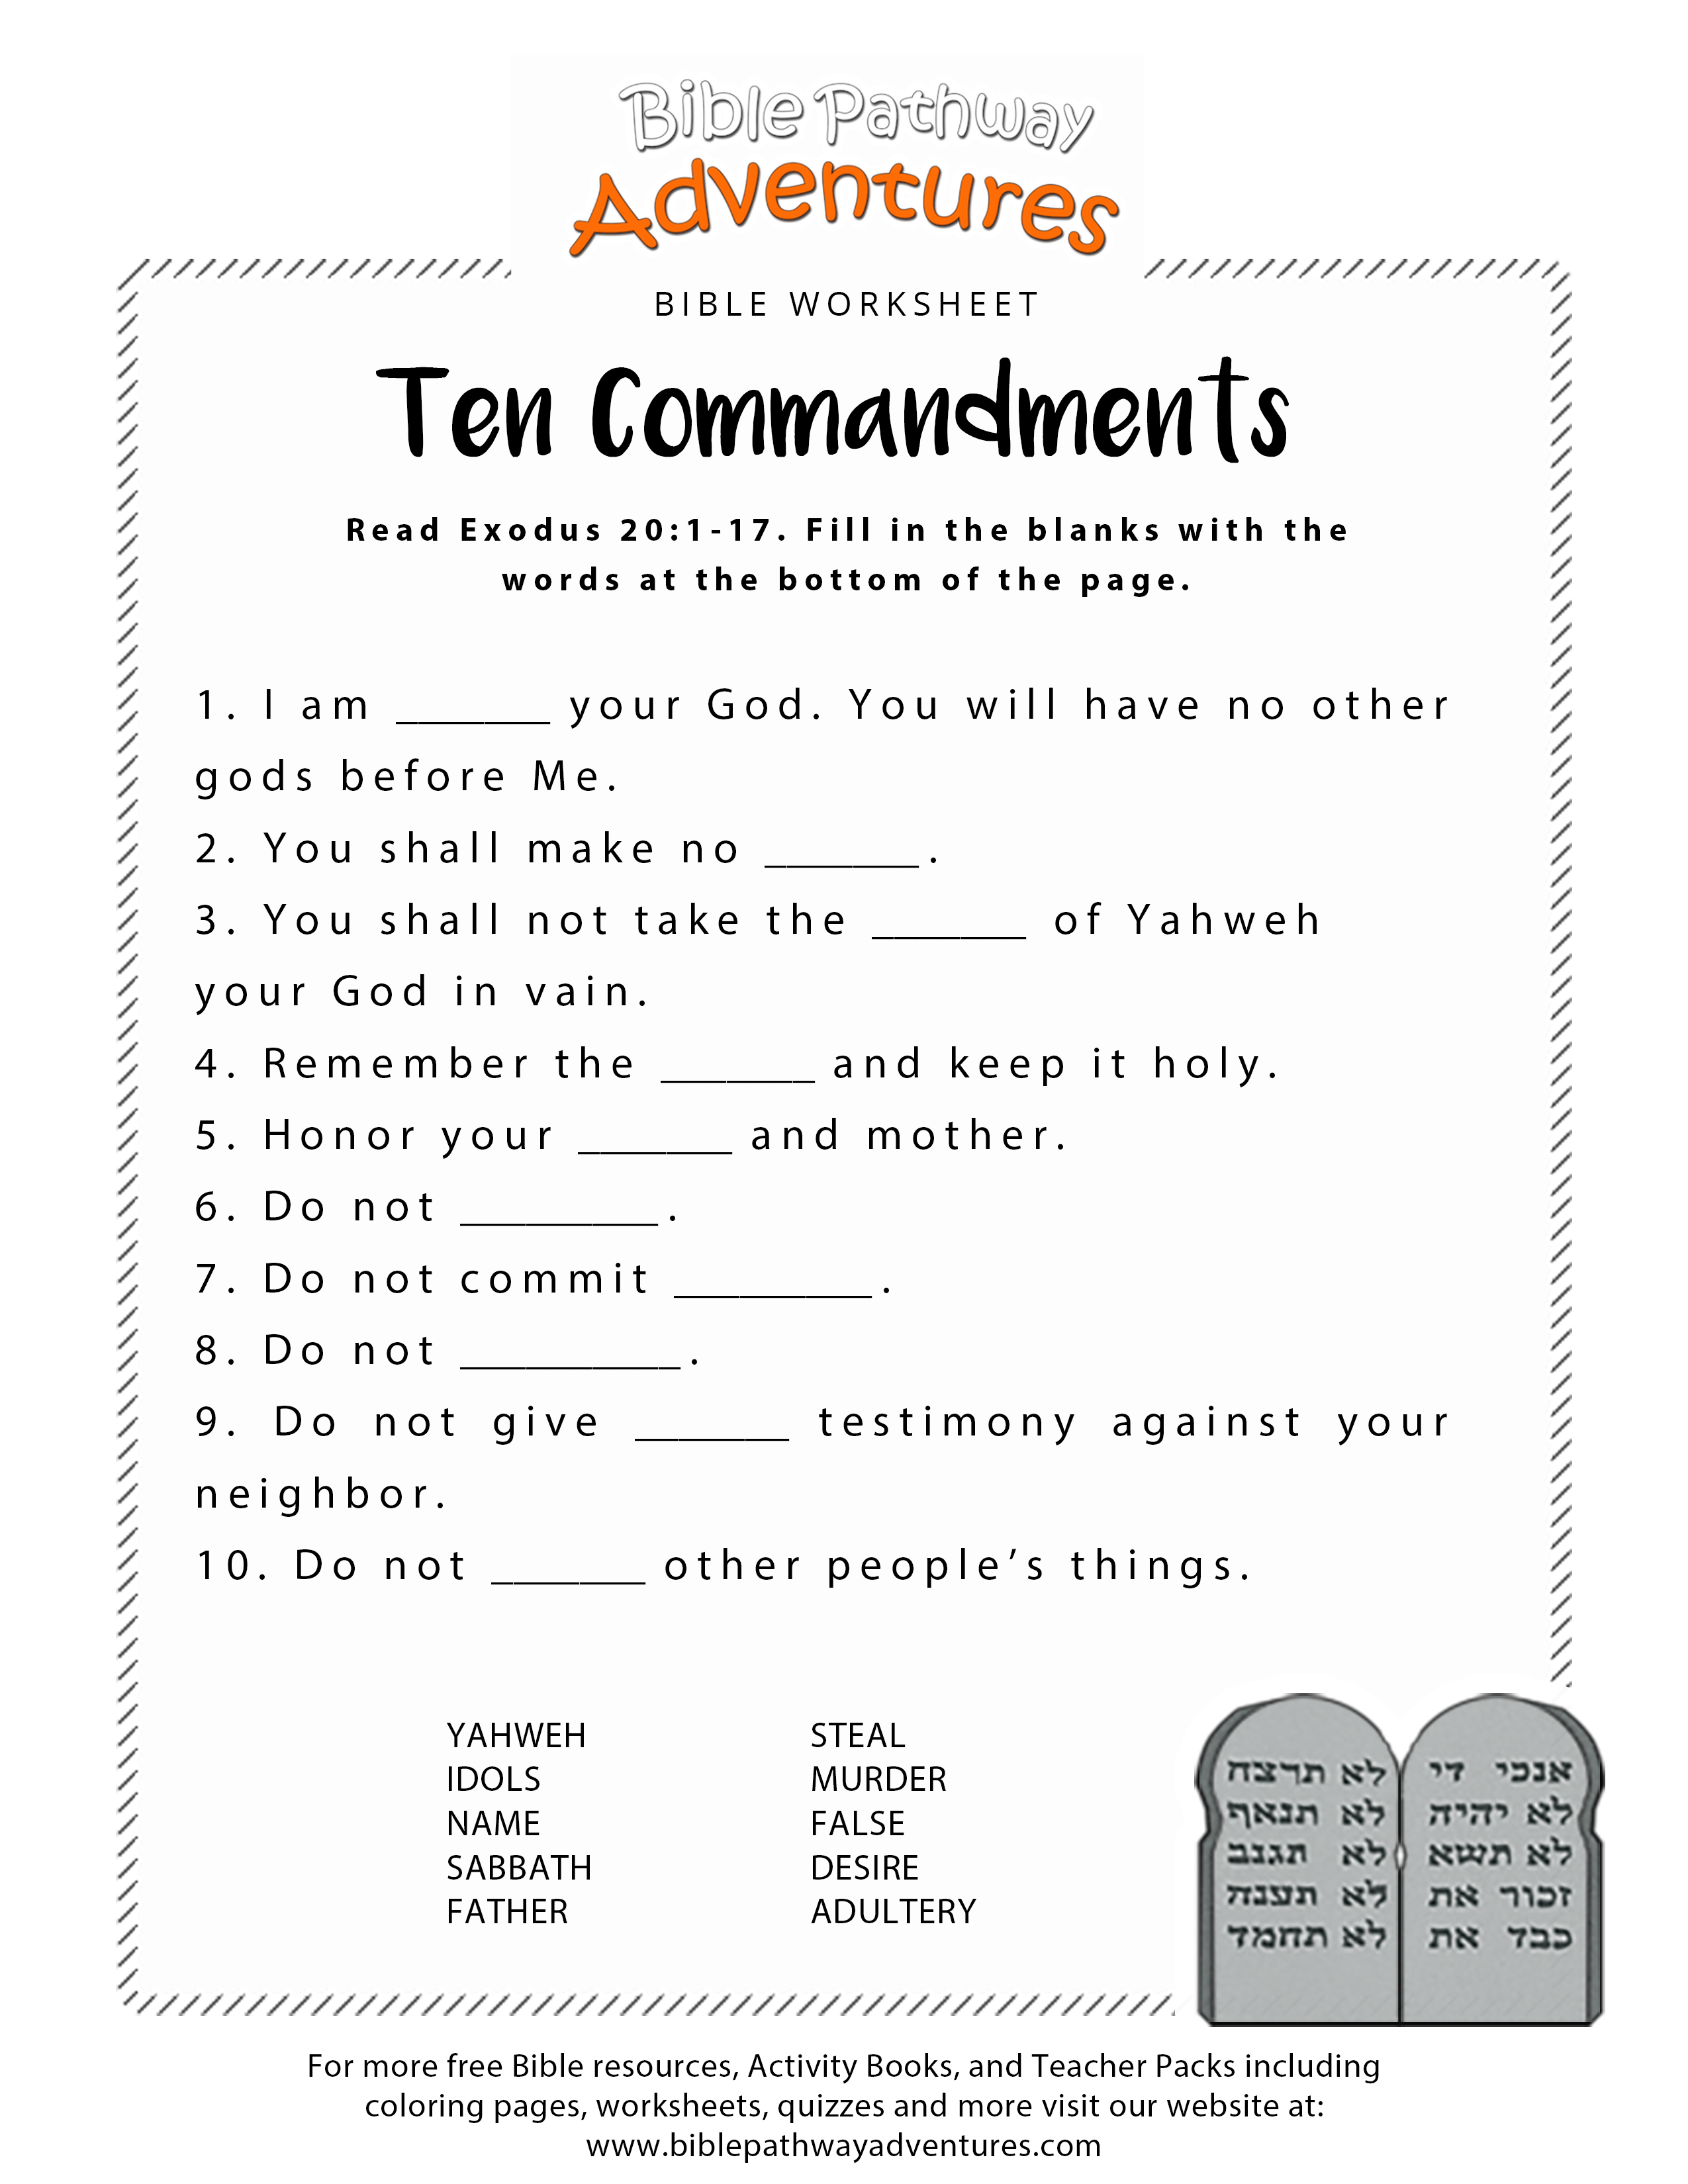 Free Printable Bible Worksheets For Youth – Worksheet Template - Free Printable Sunday School Lessons For Youth